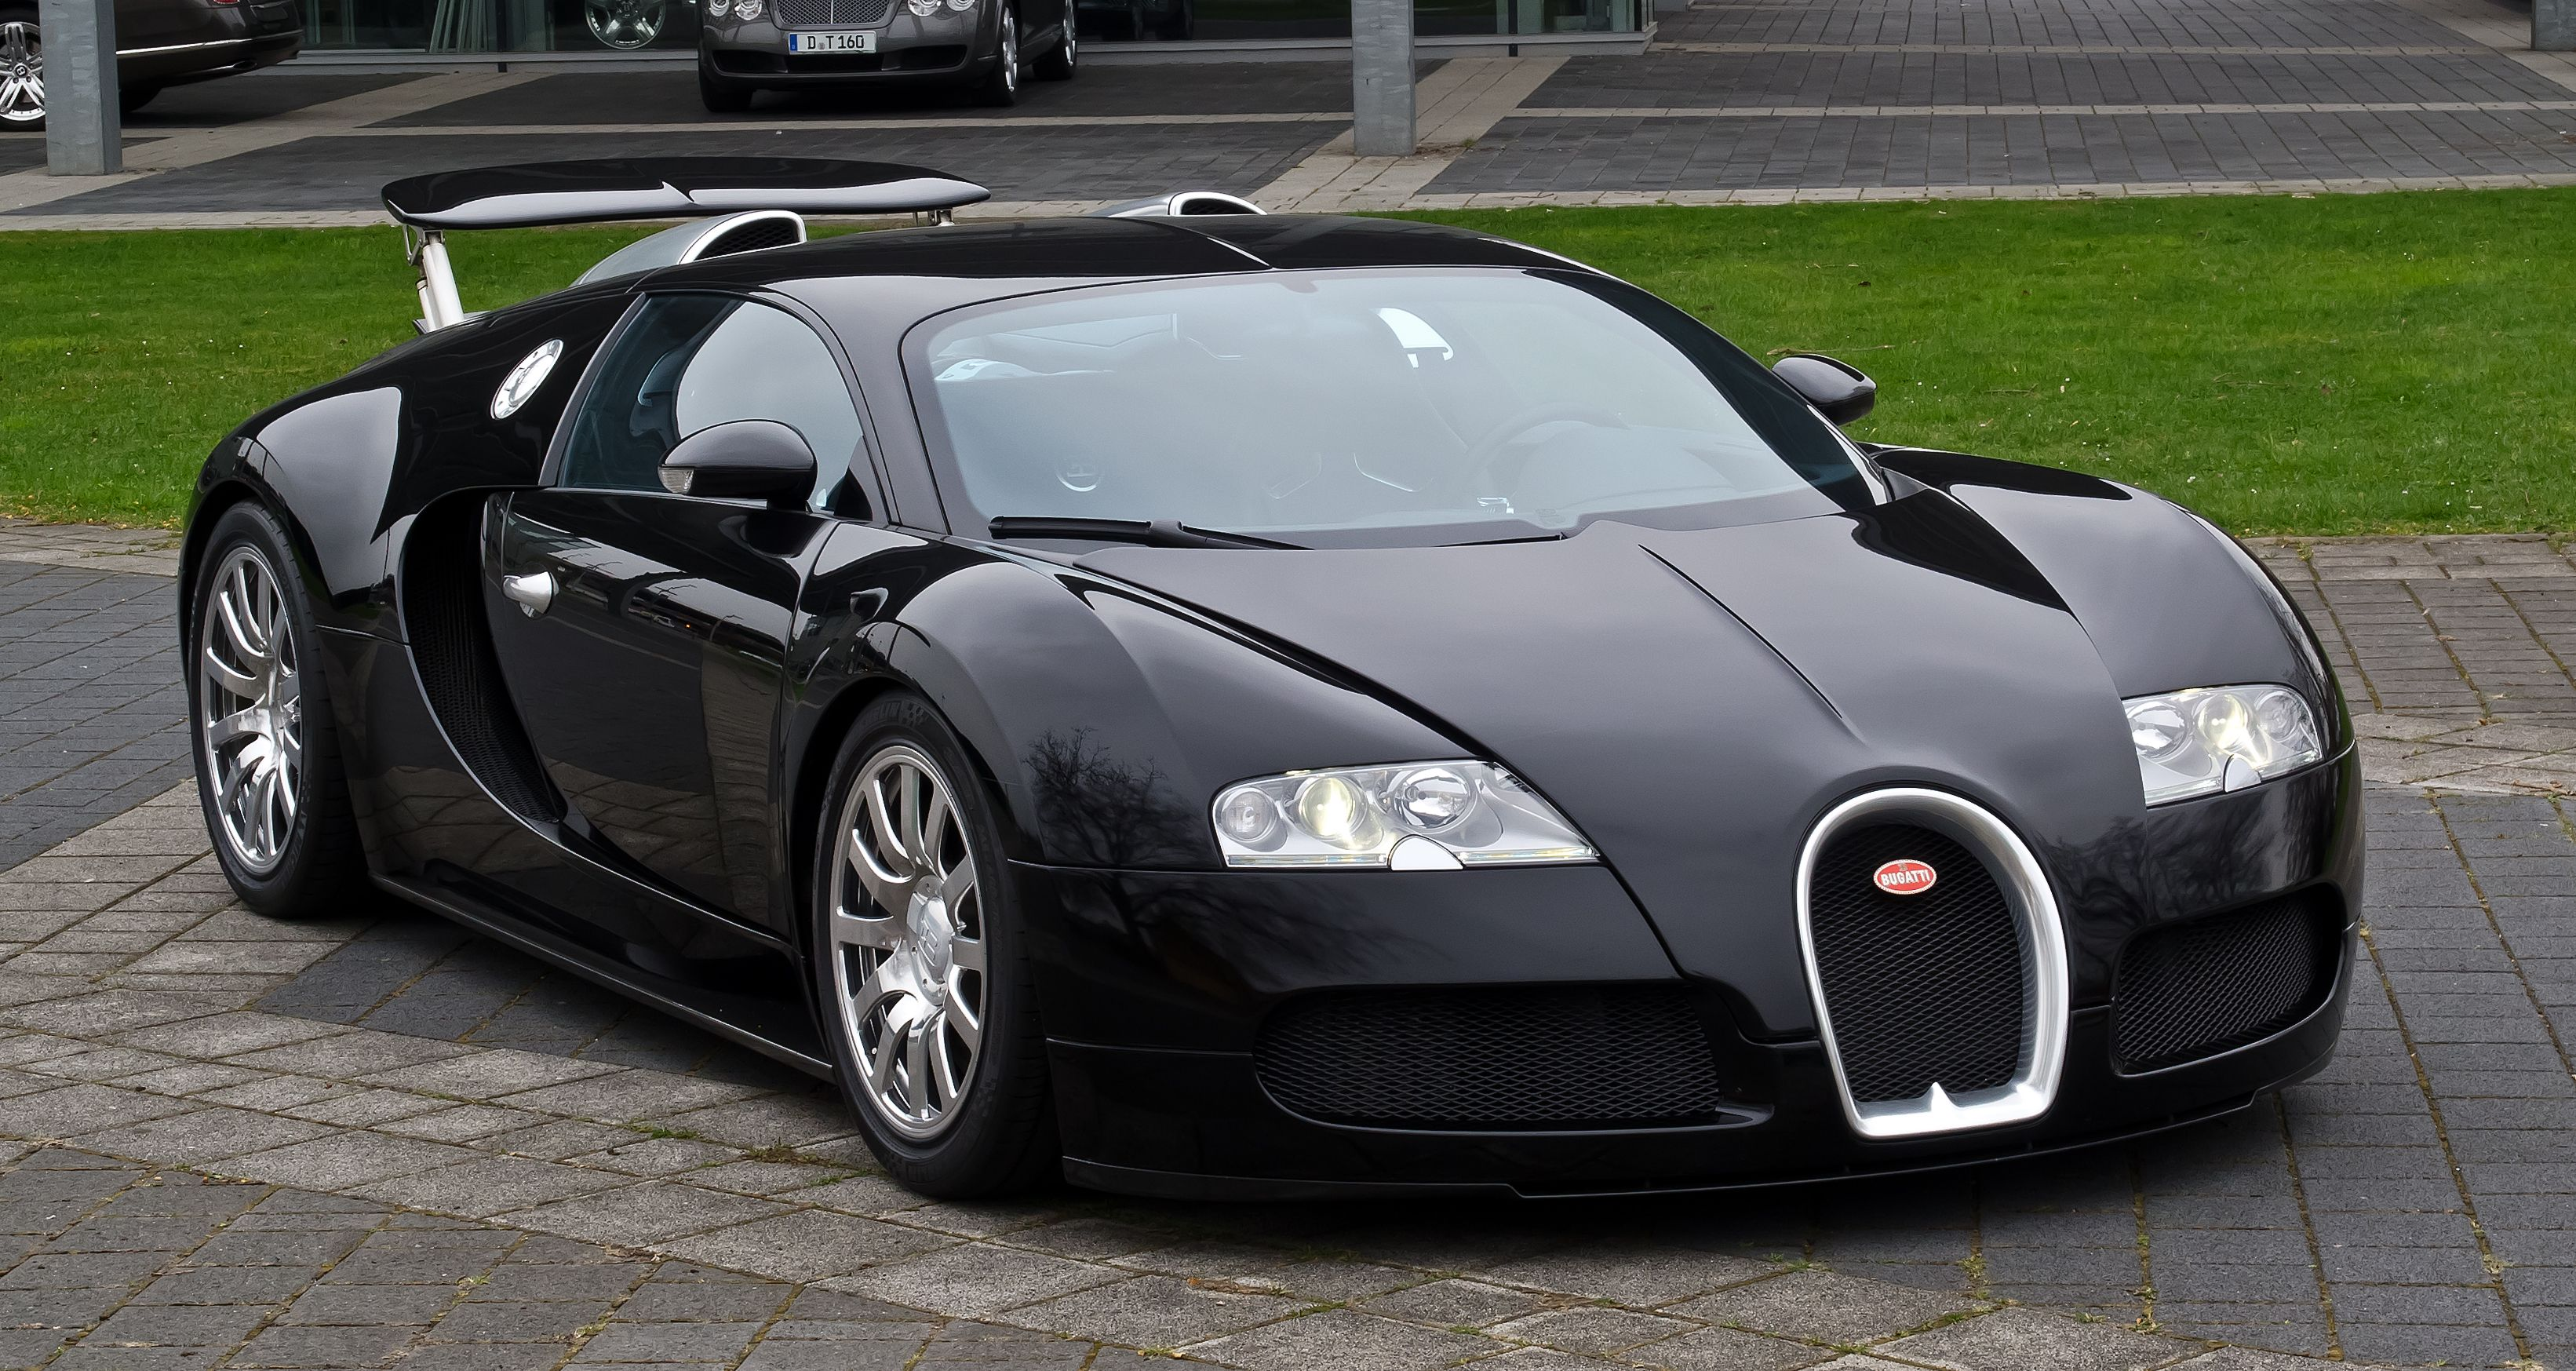 Bugatti Veyron 16.4 Grand Sport Vitesse Country Of Origin: France Engine:  1,200 Hp,